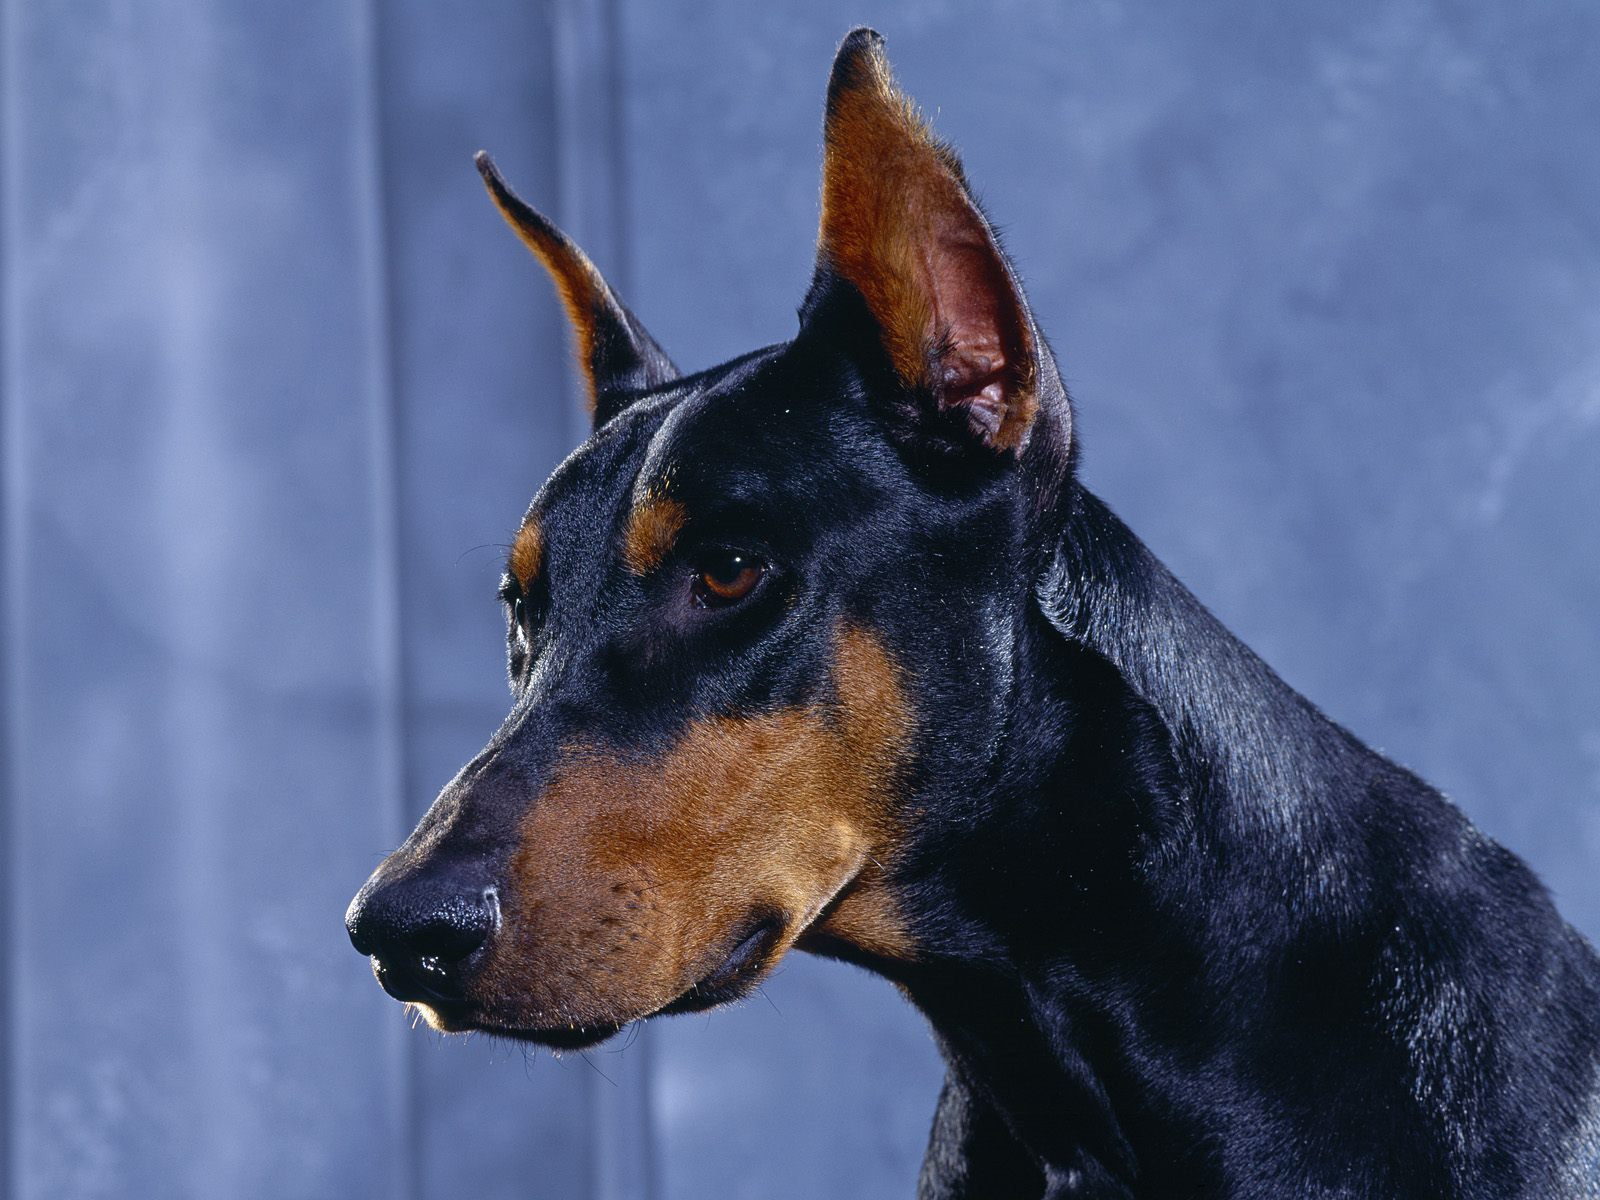 Funny Doberman Pinscher Dog